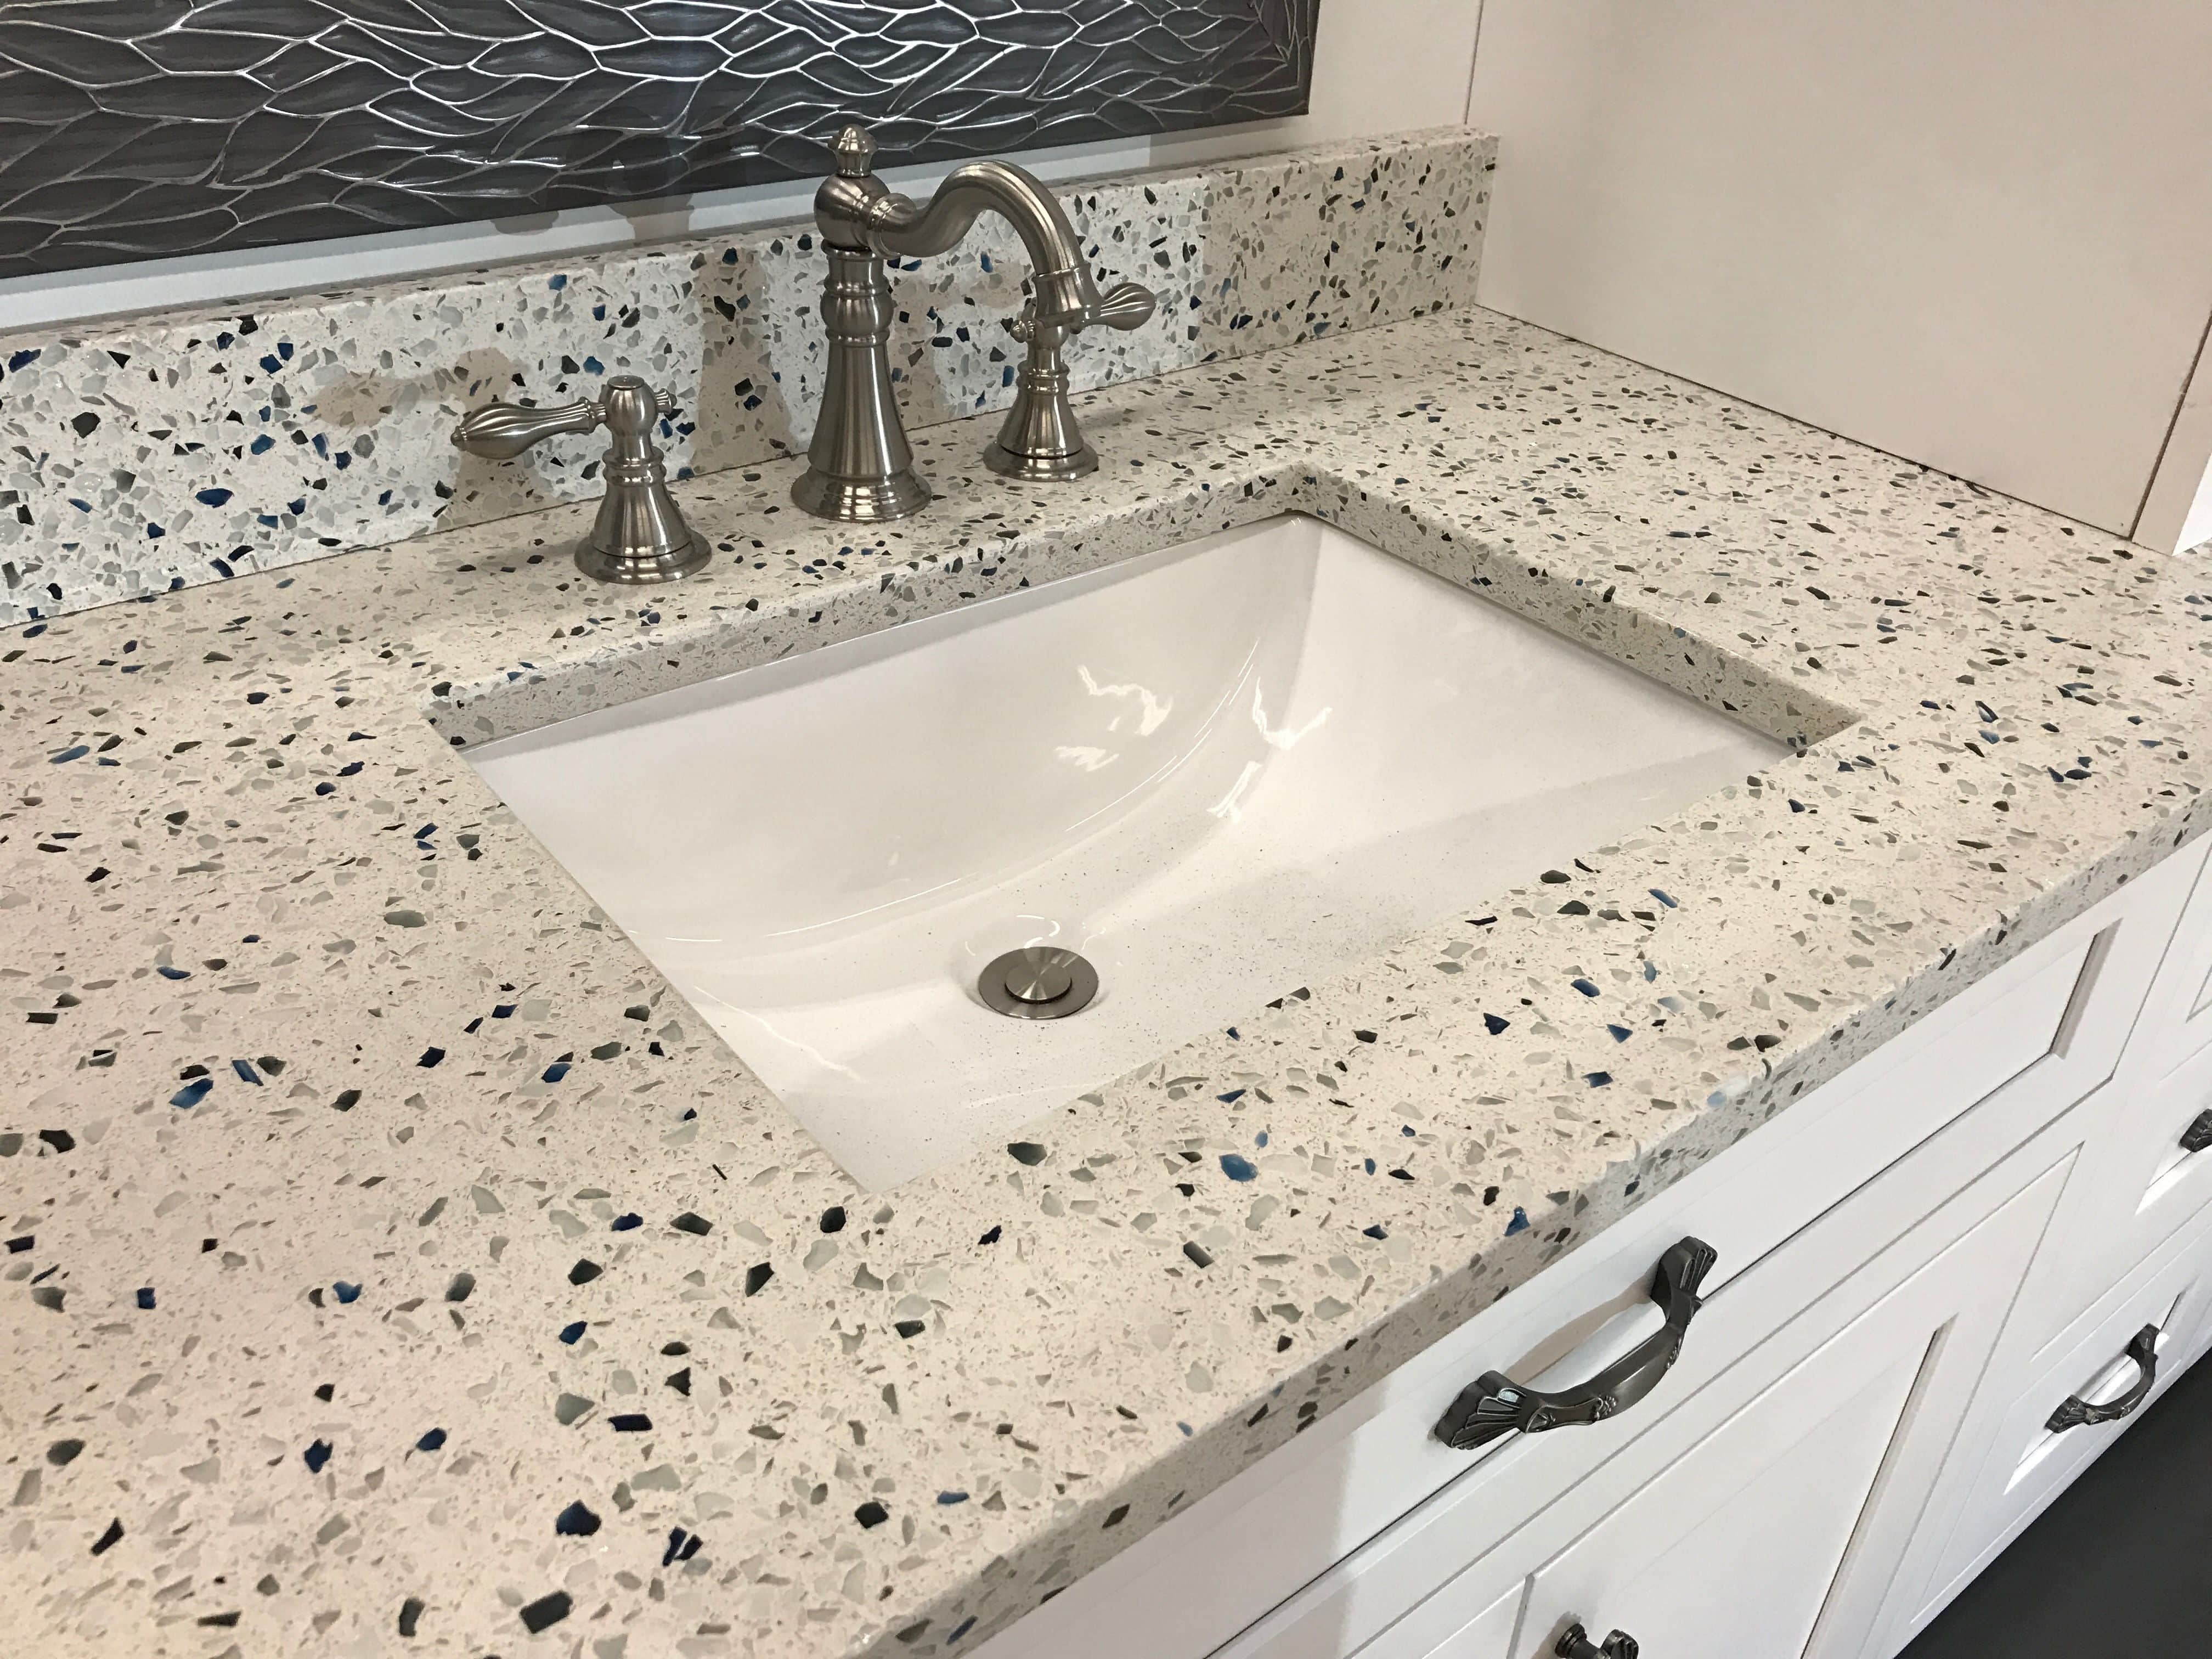 Recycled and composite bathroom counter